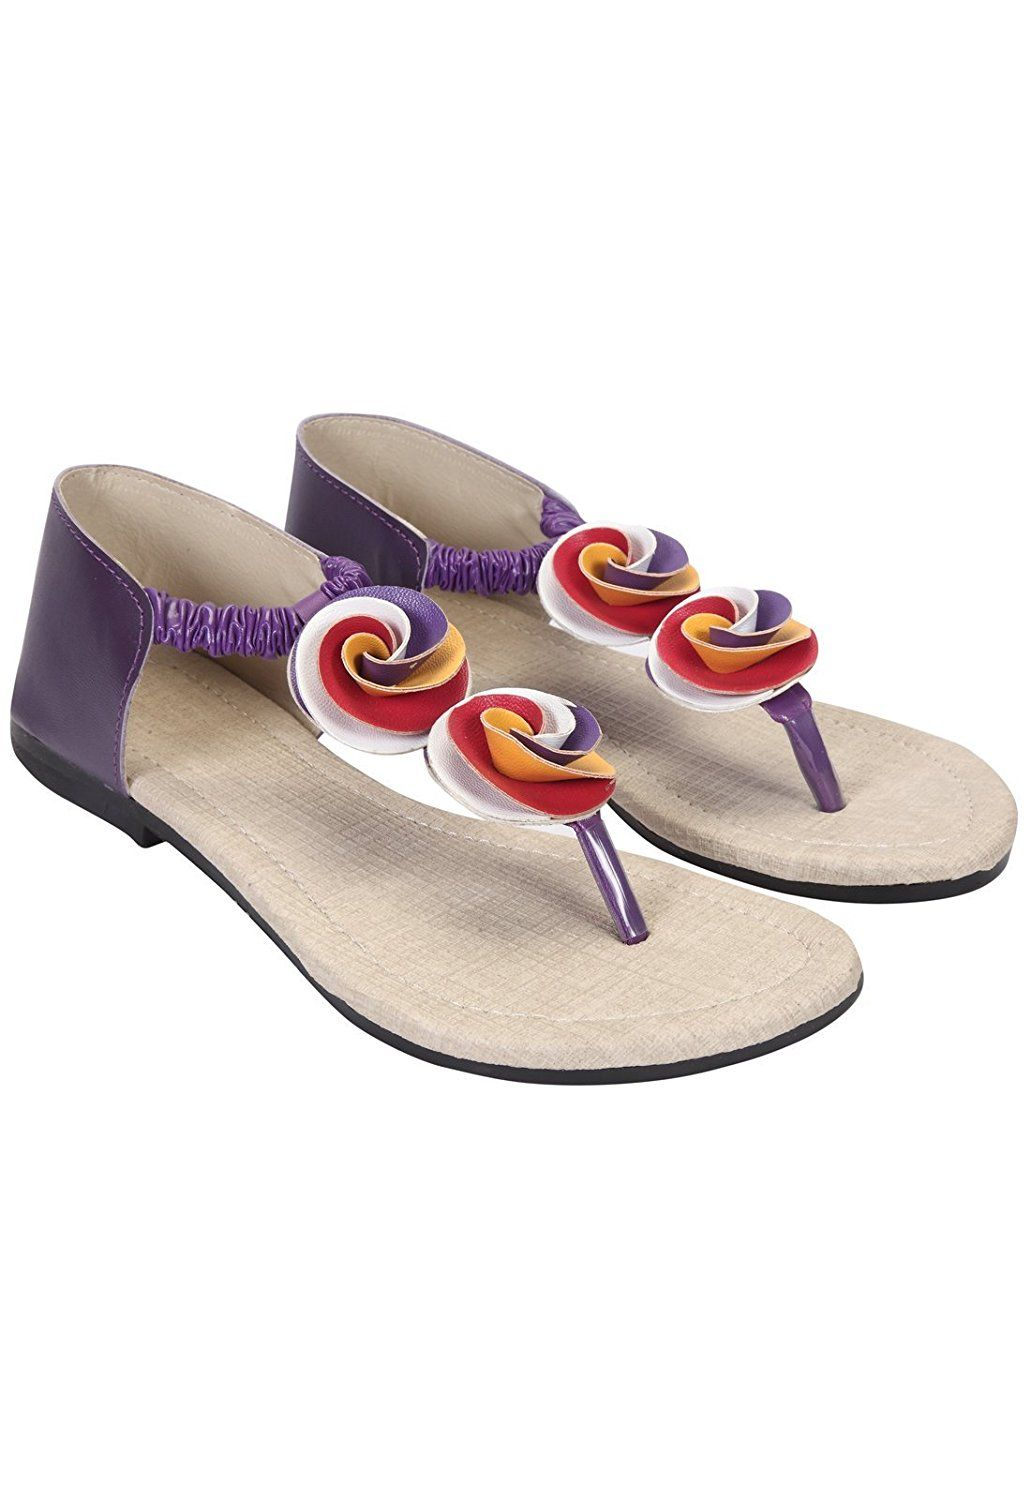 WALK N STYLE Women's Casual Sandal ** Want to know more